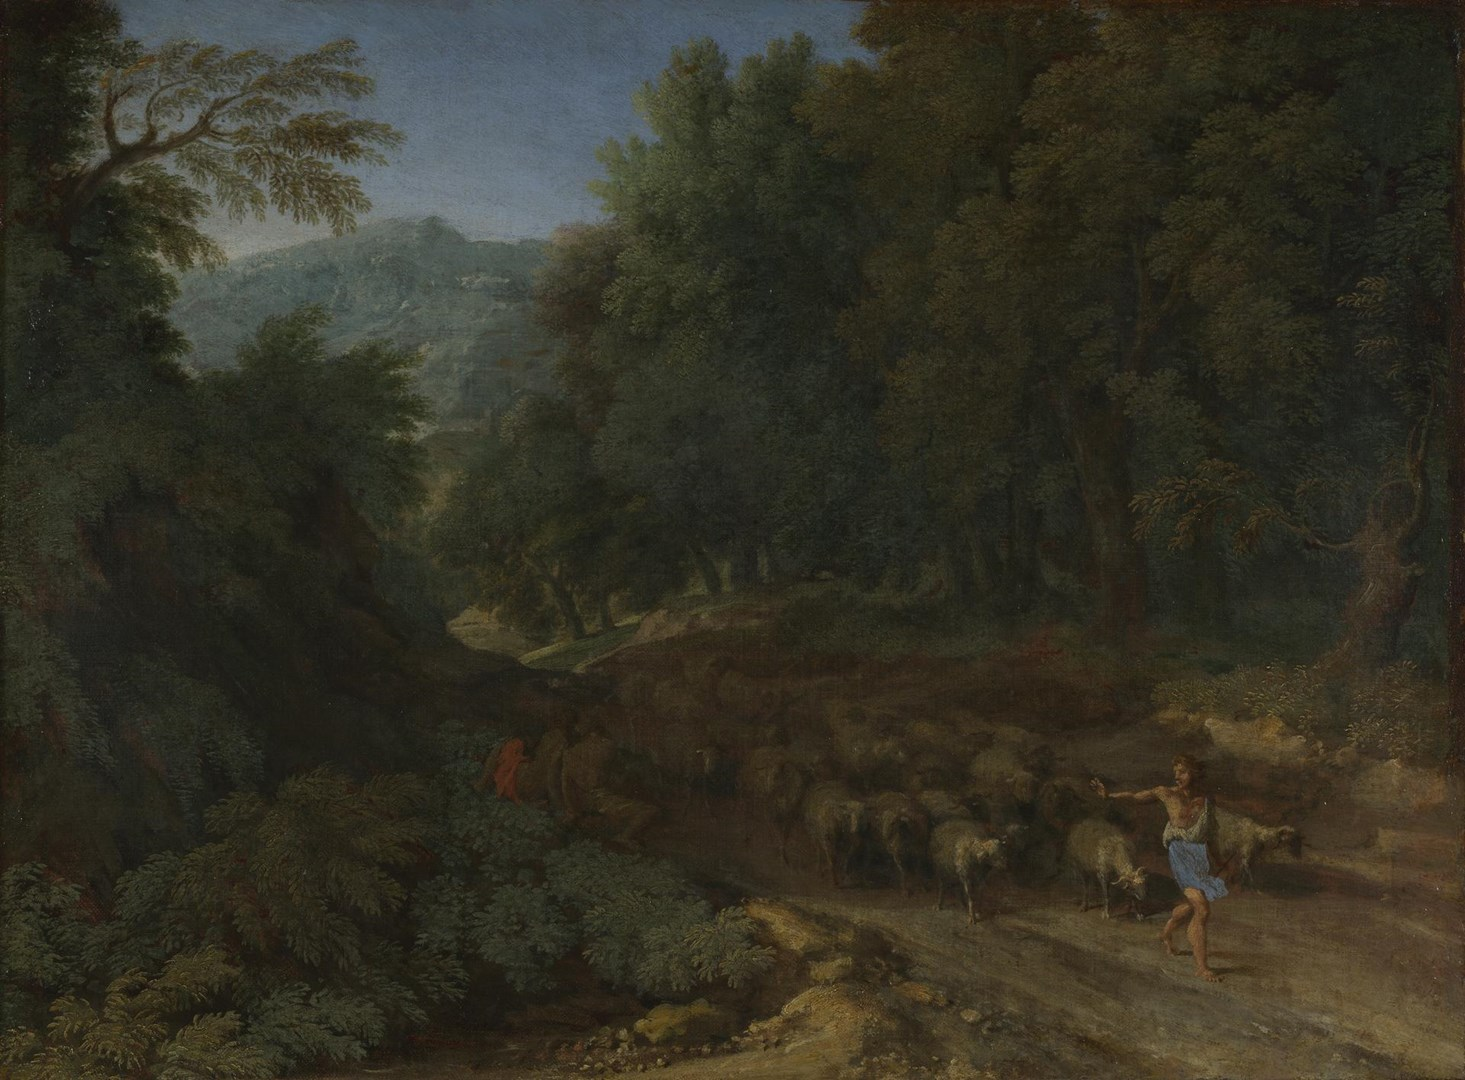 Landscape with a Shepherd and his Flock by Gaspard Dughet